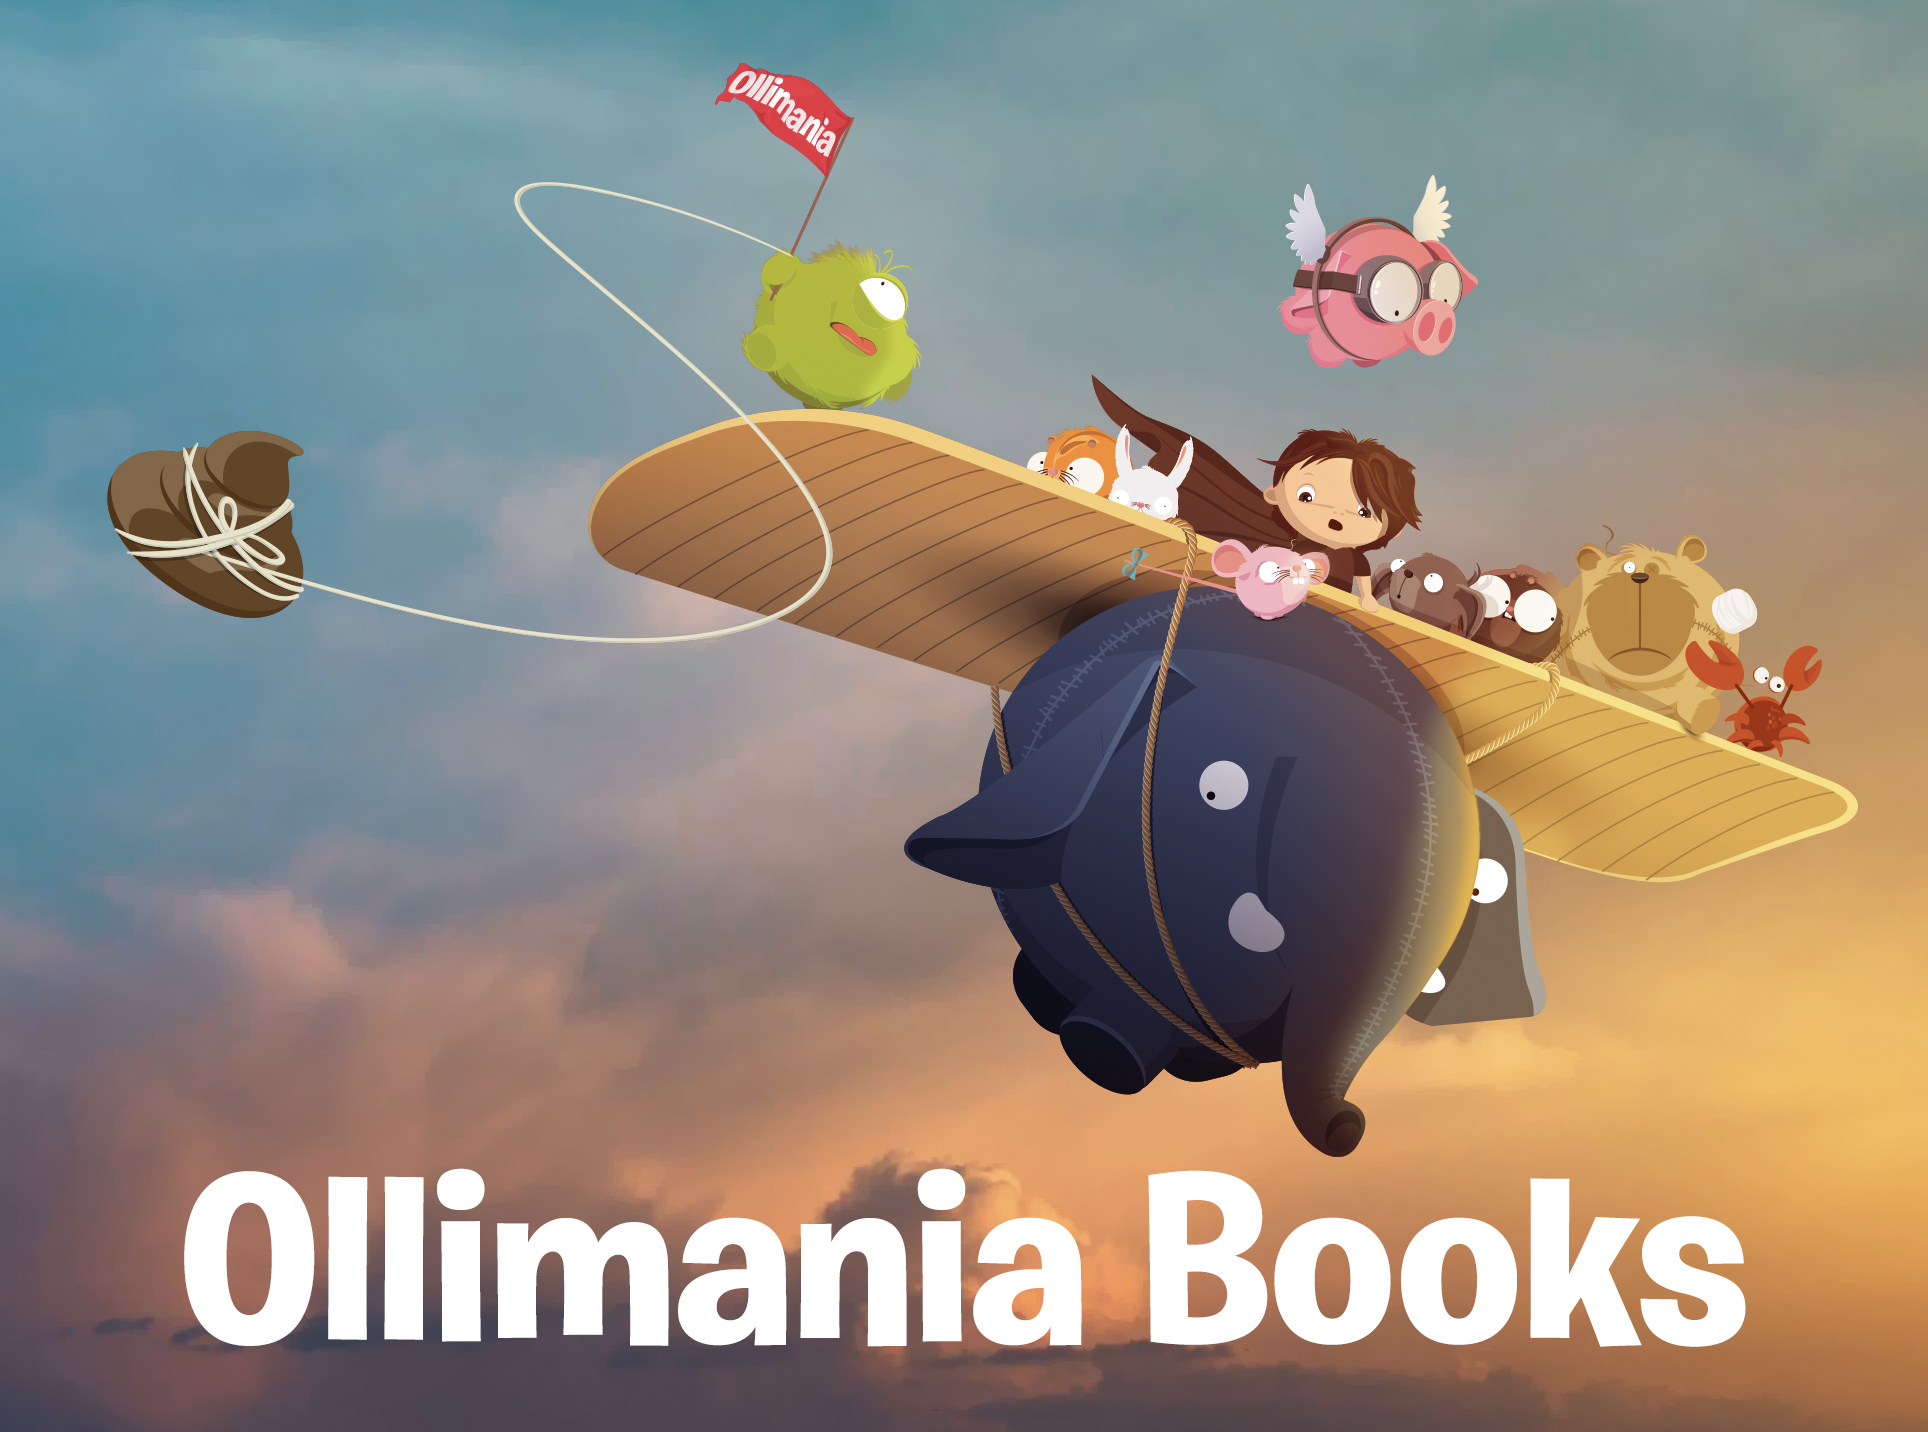 FLYING OLLI PLANE title